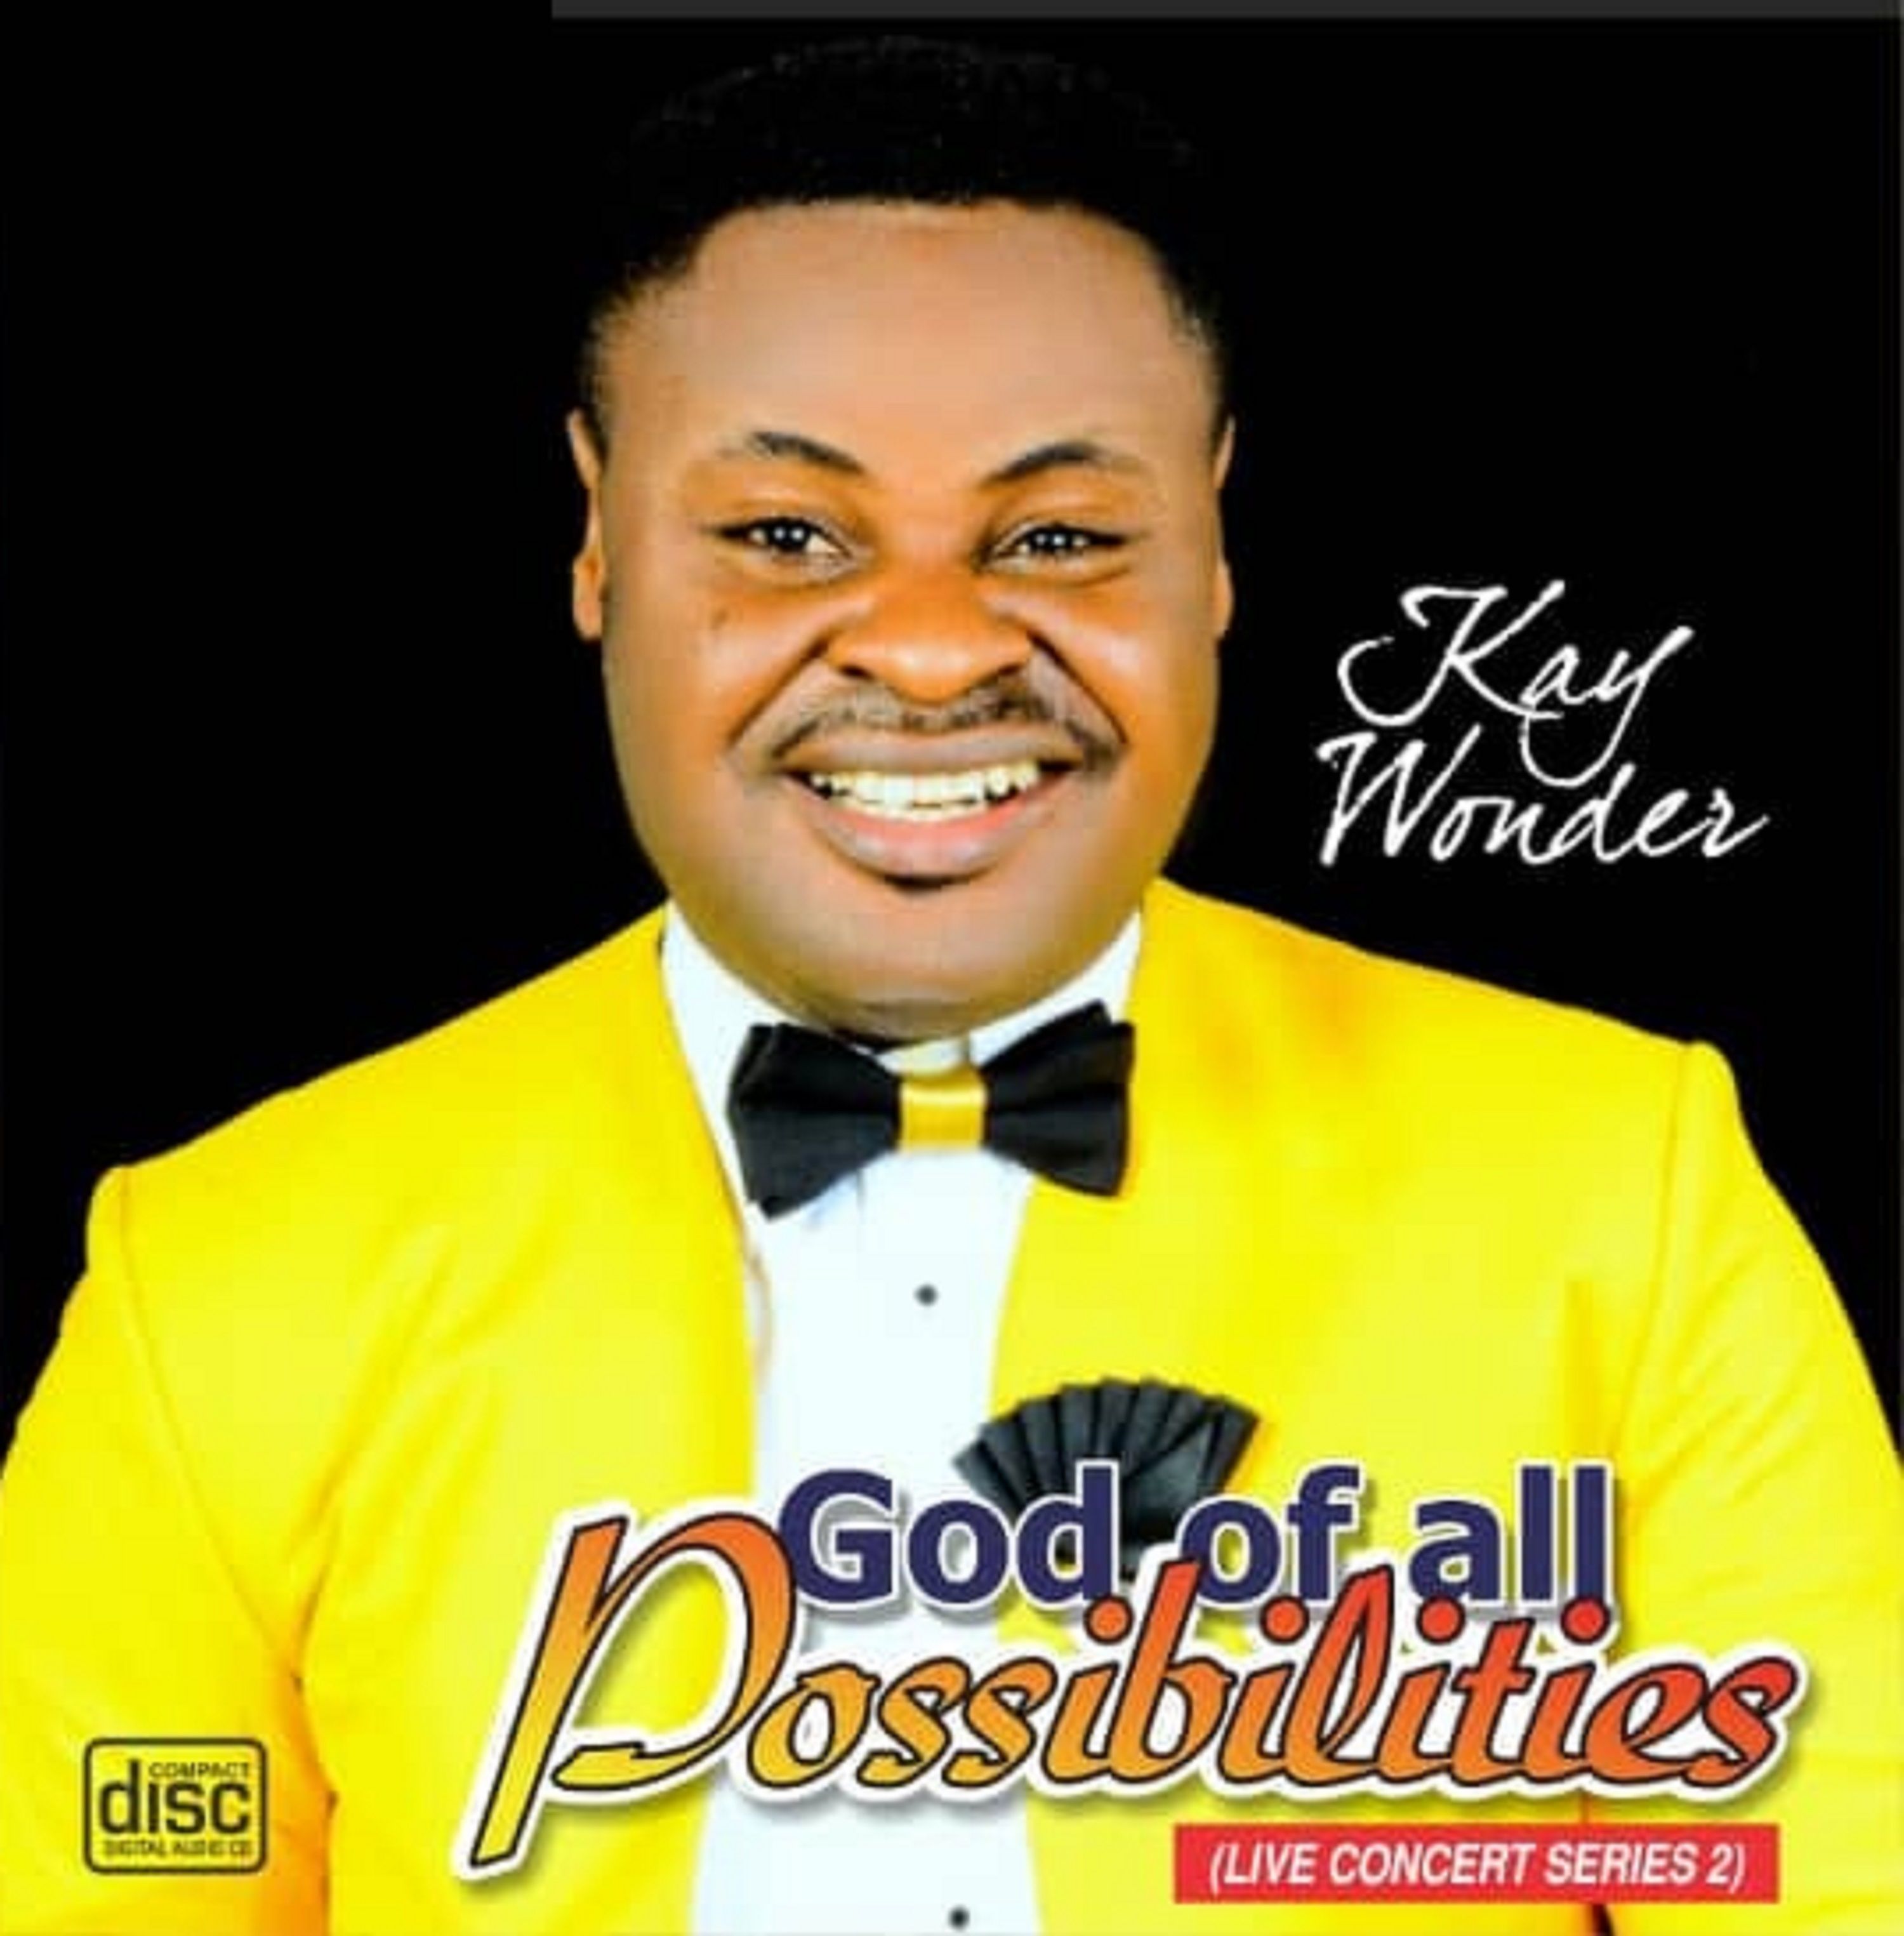 Kay Wonder God of all possibilities